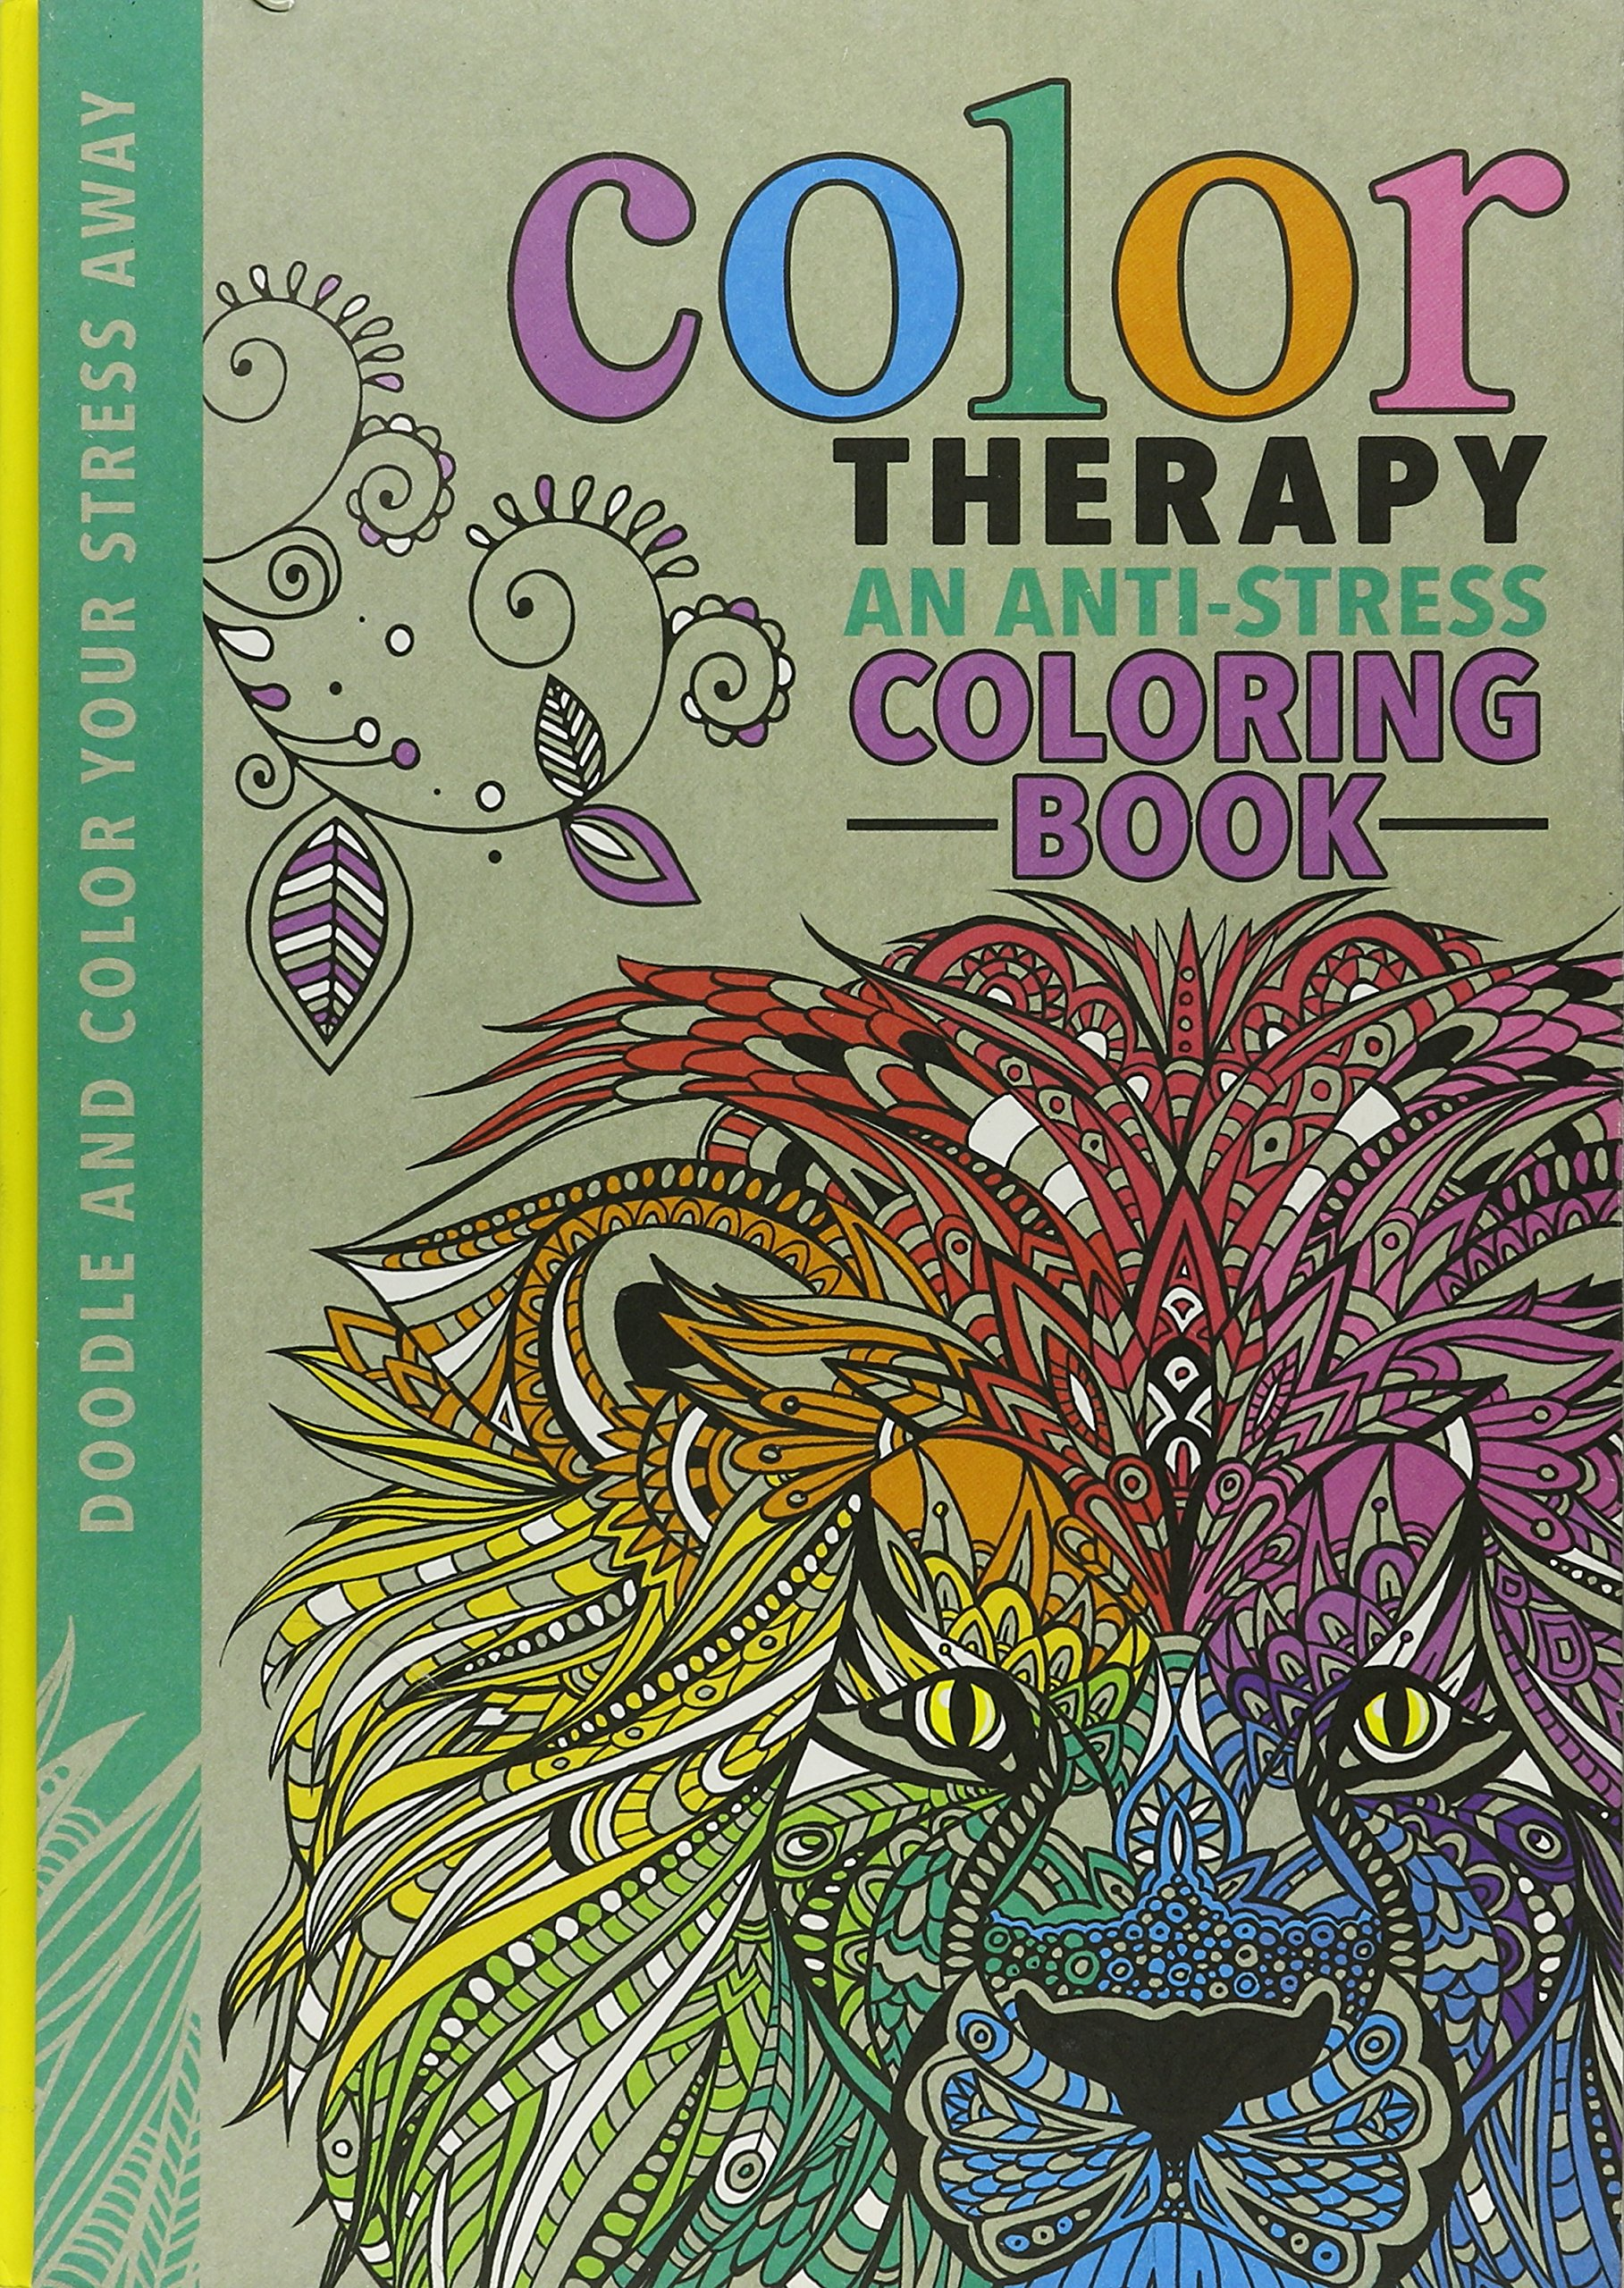 - Amazon.com: Color Therapy: An Anti-Stress Coloring Book: Wilde